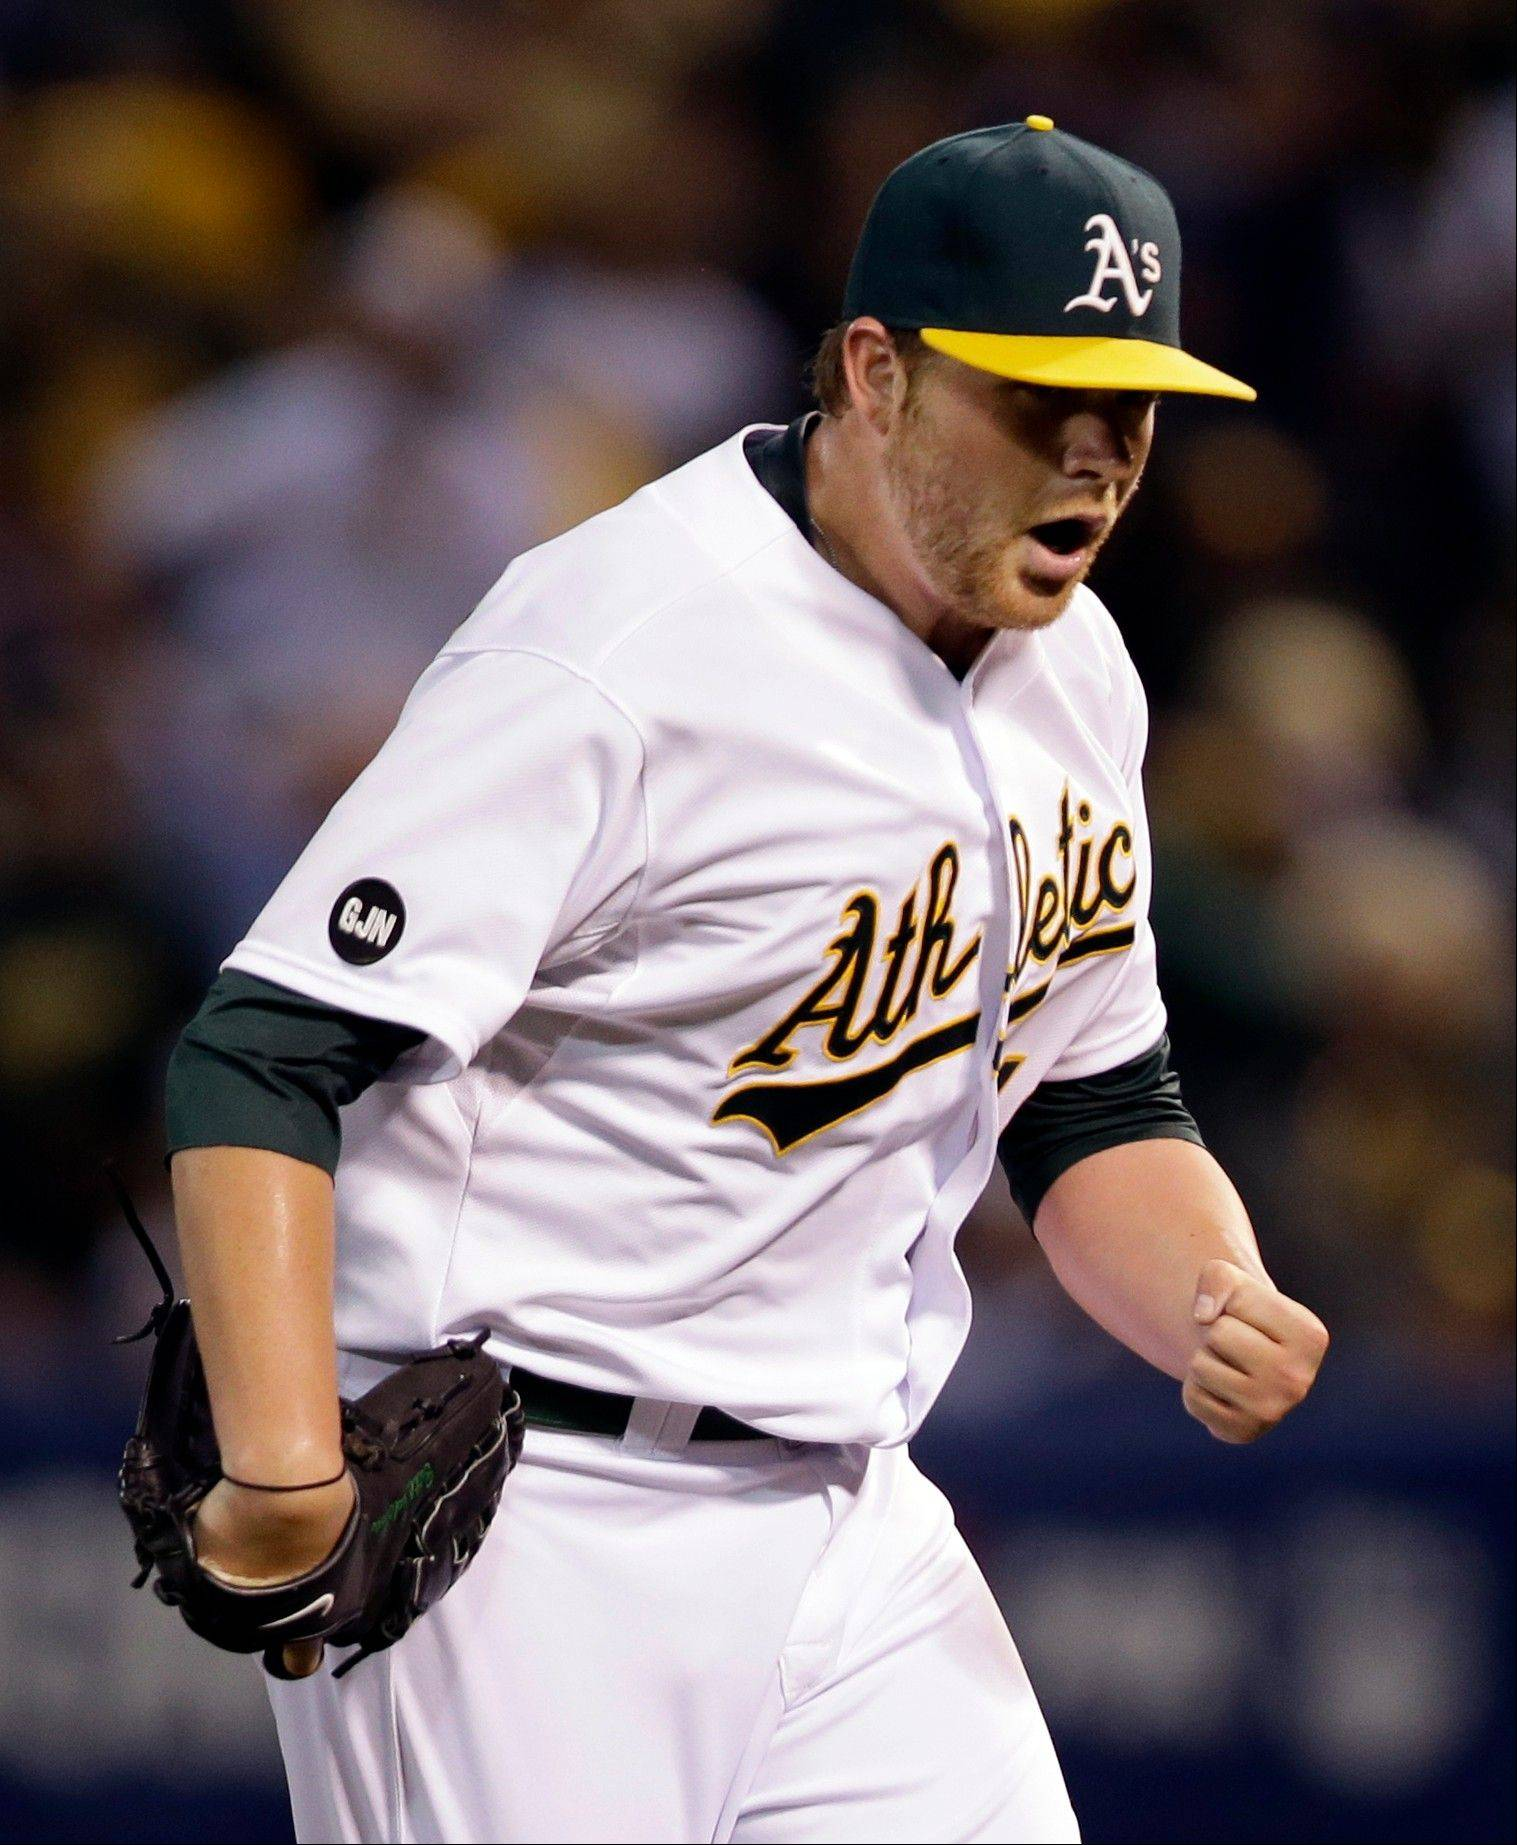 Oakland Athletics starting pitcher Brett Anderson pumps his fist after Detroit Tigers' Omar Infante hit into a double play to end the top of the third inning Tuesday during Game 3 of an American League division series in Oakland, Calif.